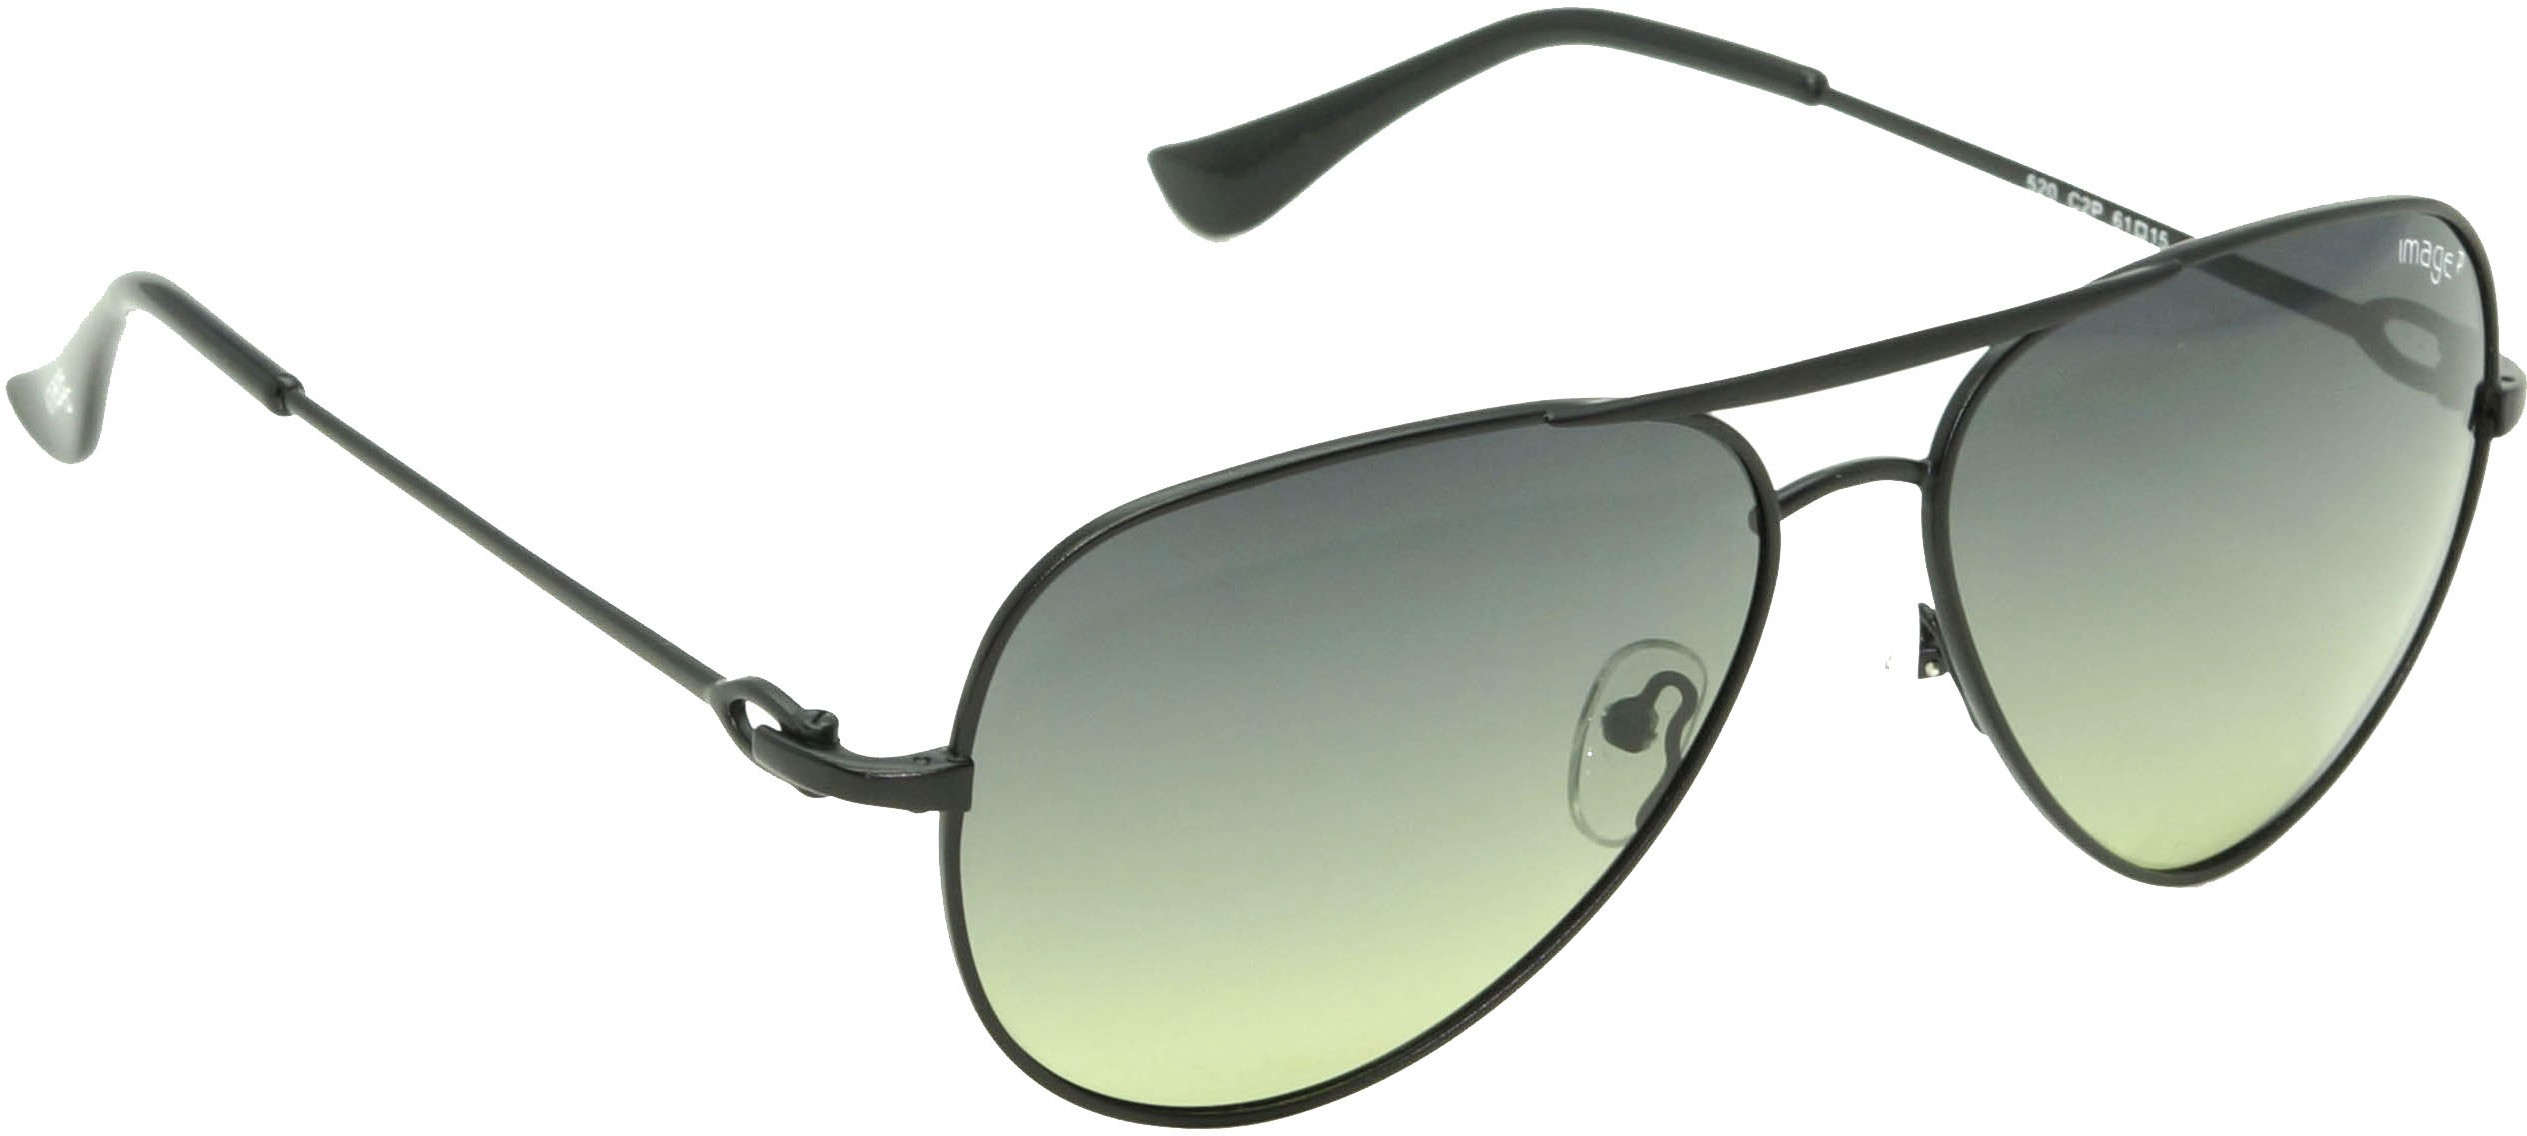 Deals - Delhi - Image, IDEE... <br> Sunglasses<br> Category - sunglasses<br> Business - Flipkart.com